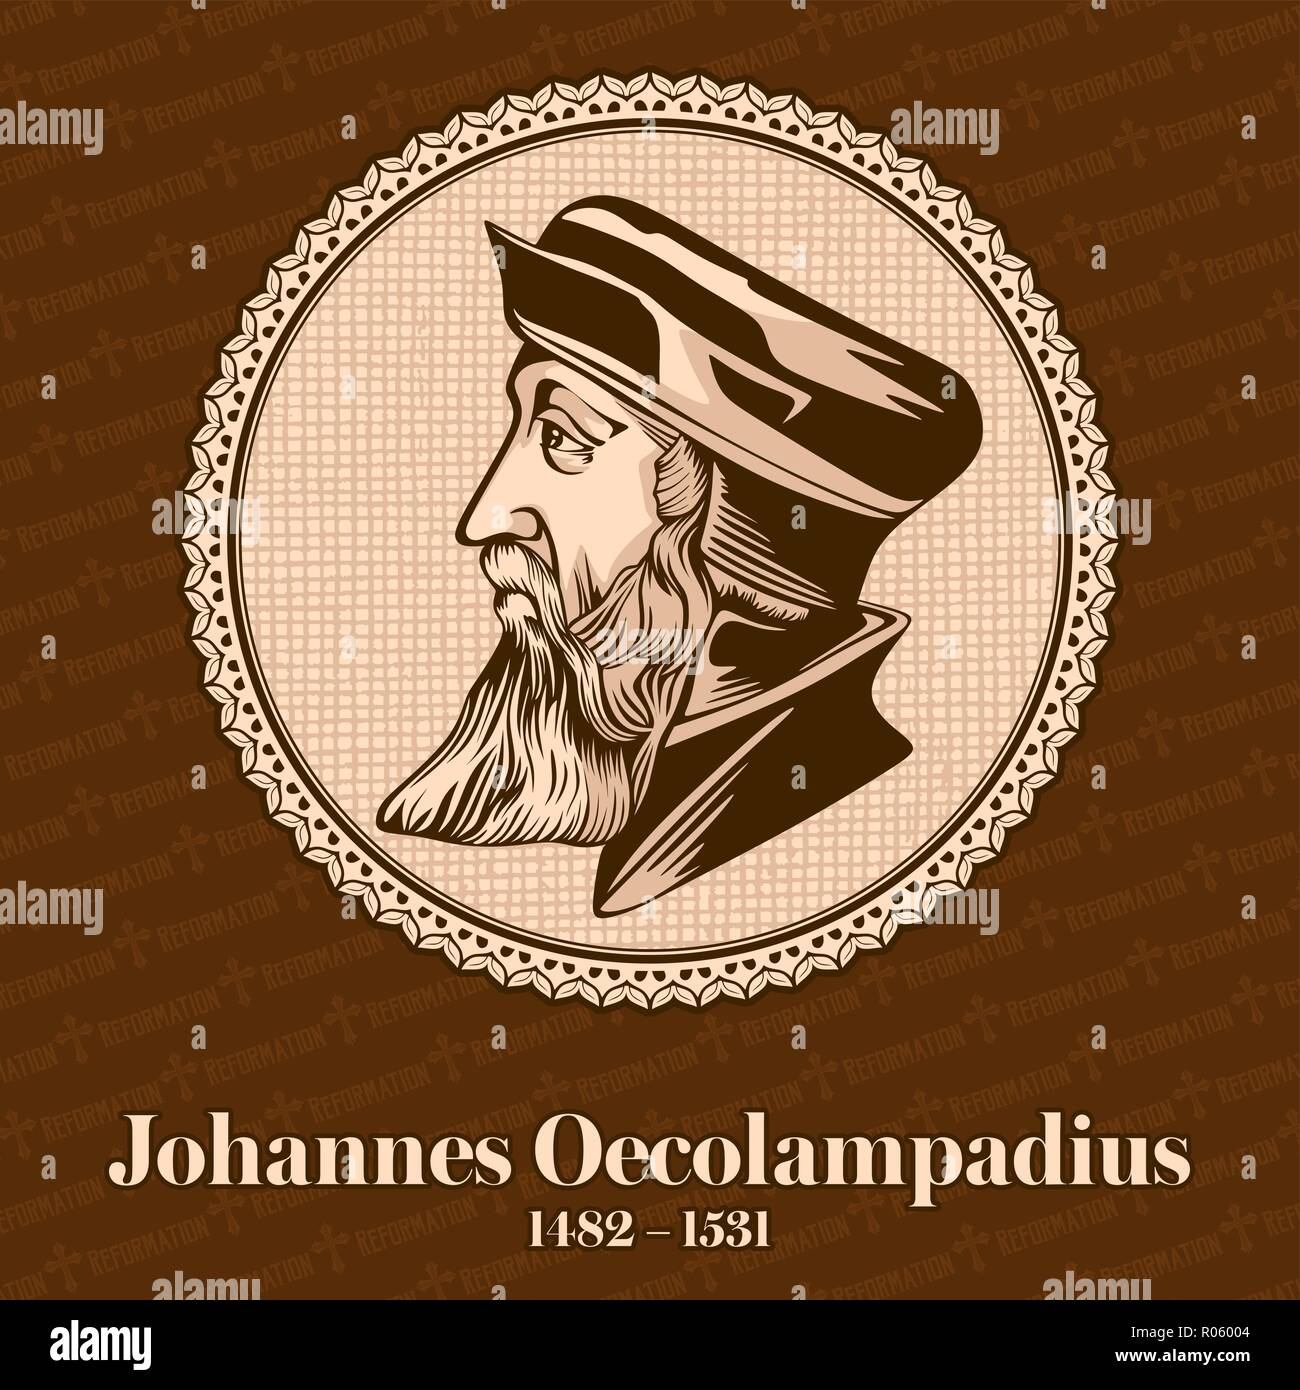 Johannes Oecolampadius (1482 – 1531) was a German Protestant reformer in the Reformed tradition from the Electoral Palatinate. - Stock Image